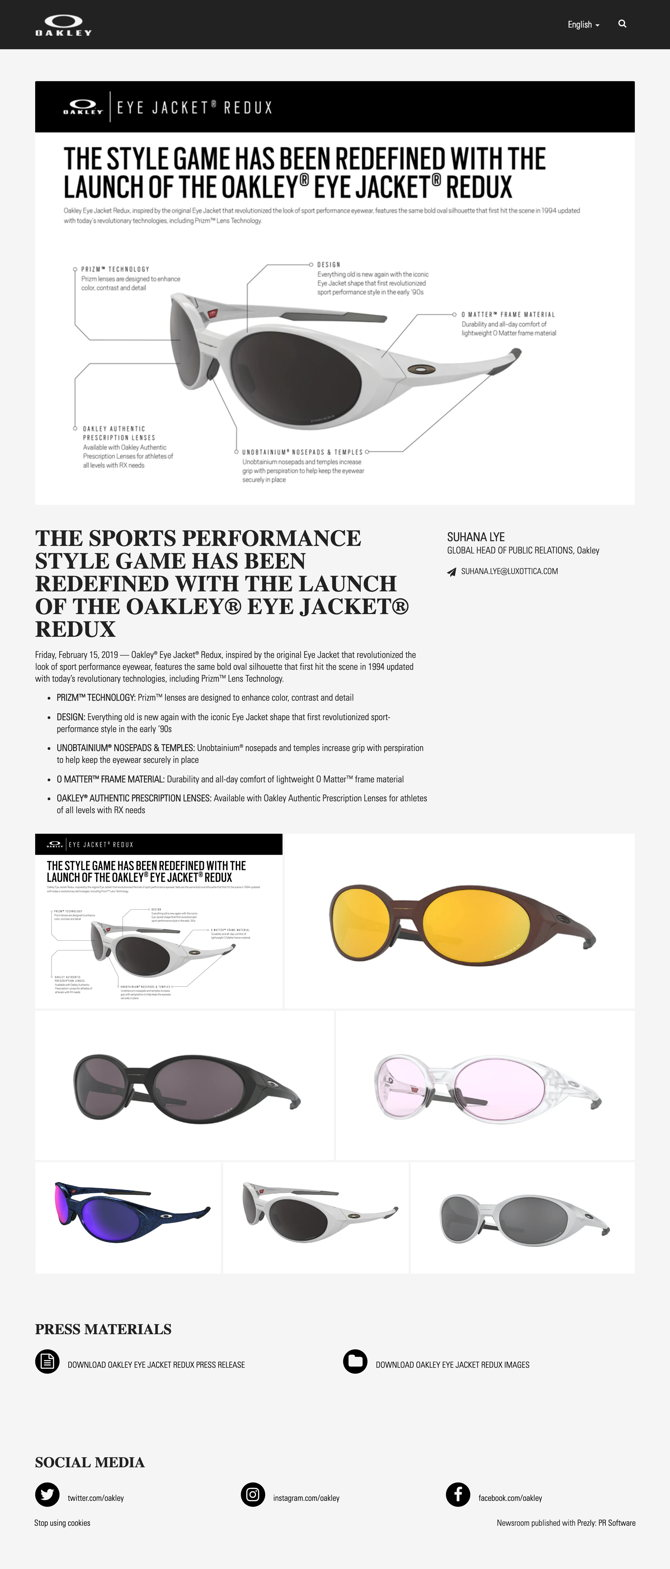 THE SPORTS PERFORMANCE STYLE GAME HAS BEEN REDEFINED WITH THE LAUNCH OF THE OAKLEY® EYE JACKET® REDUX